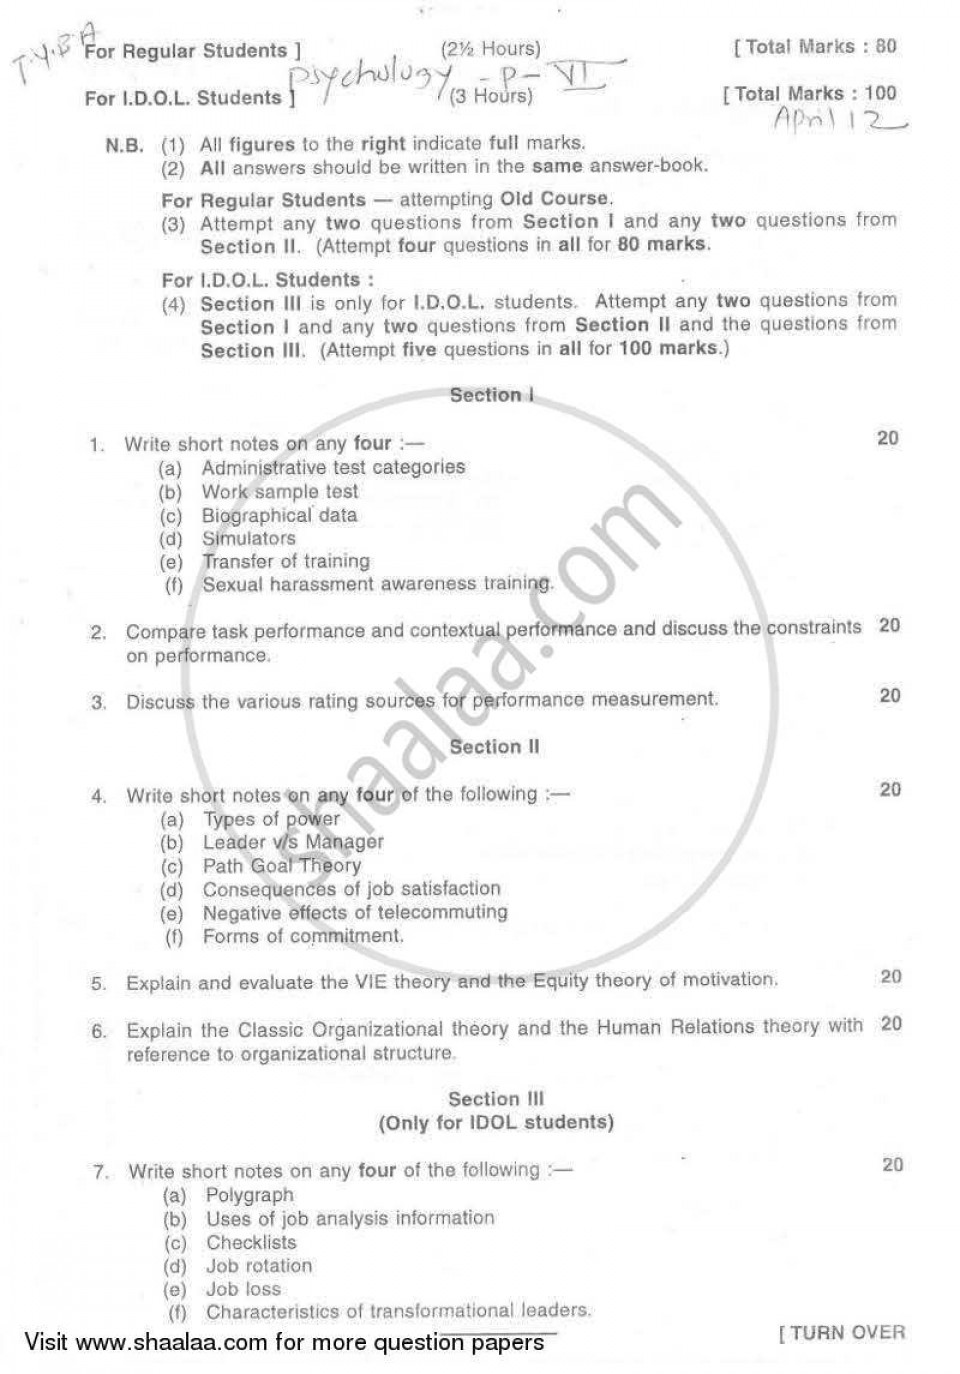 017 Psychologyearch Paper On Dreams University Of Mumbai Bachelor Industrial Organizational T Y Yearly Pattern Semester Tyba 2011 29a03925dfc524f2aa4cb10e4d3da996a Singular Psychology Research Articles 2018 Topics 960